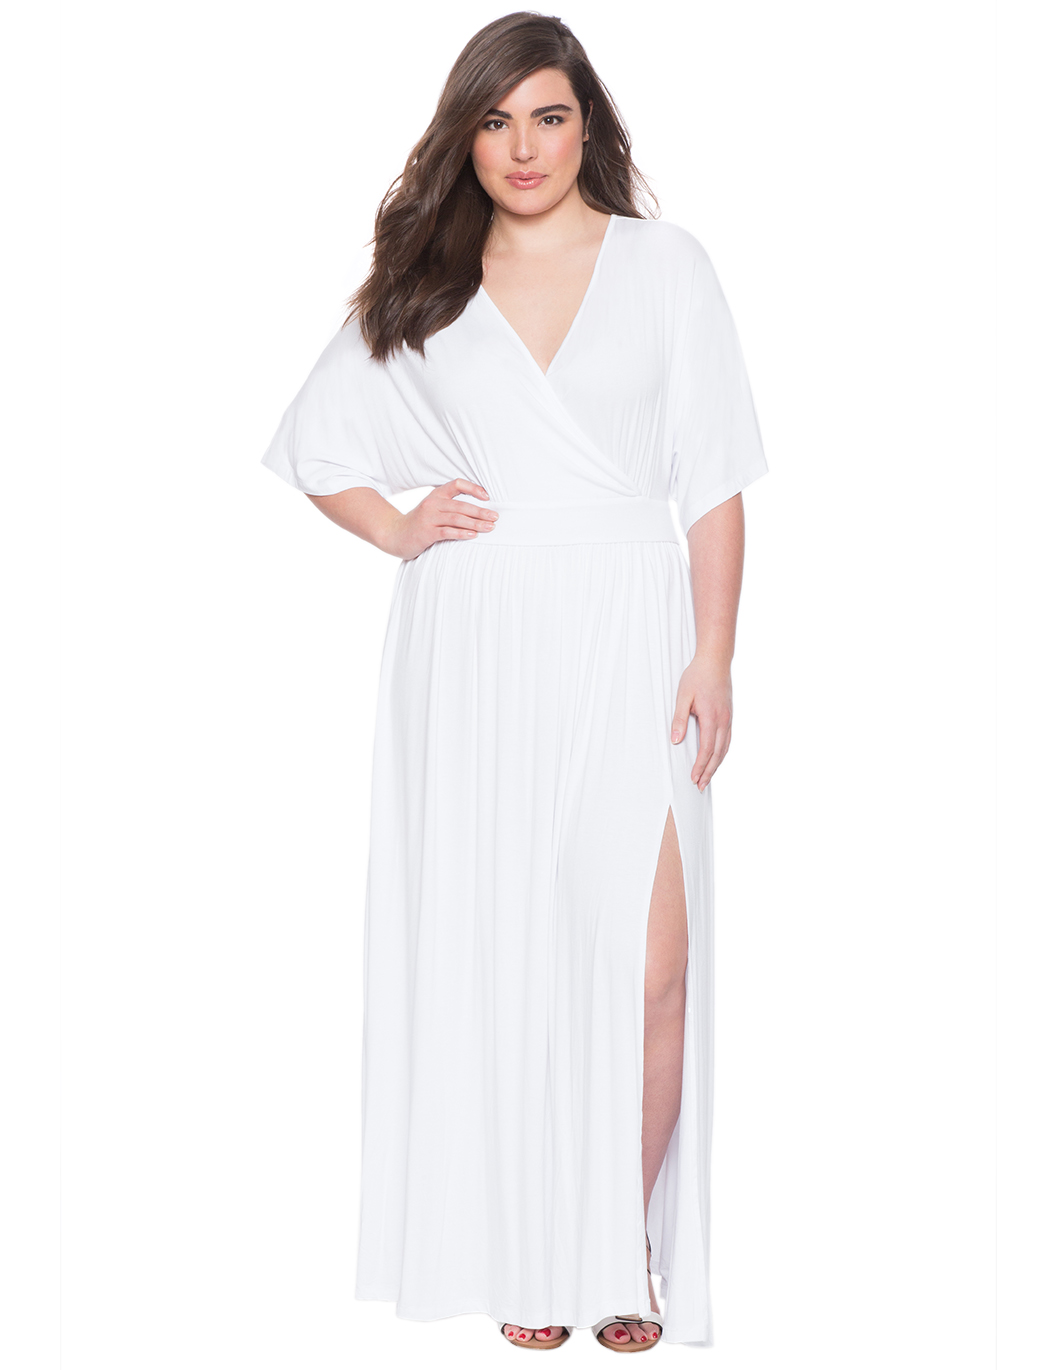 Kimono Maxi Dress | Women\'s Plus Size Dresses | ELOQUII